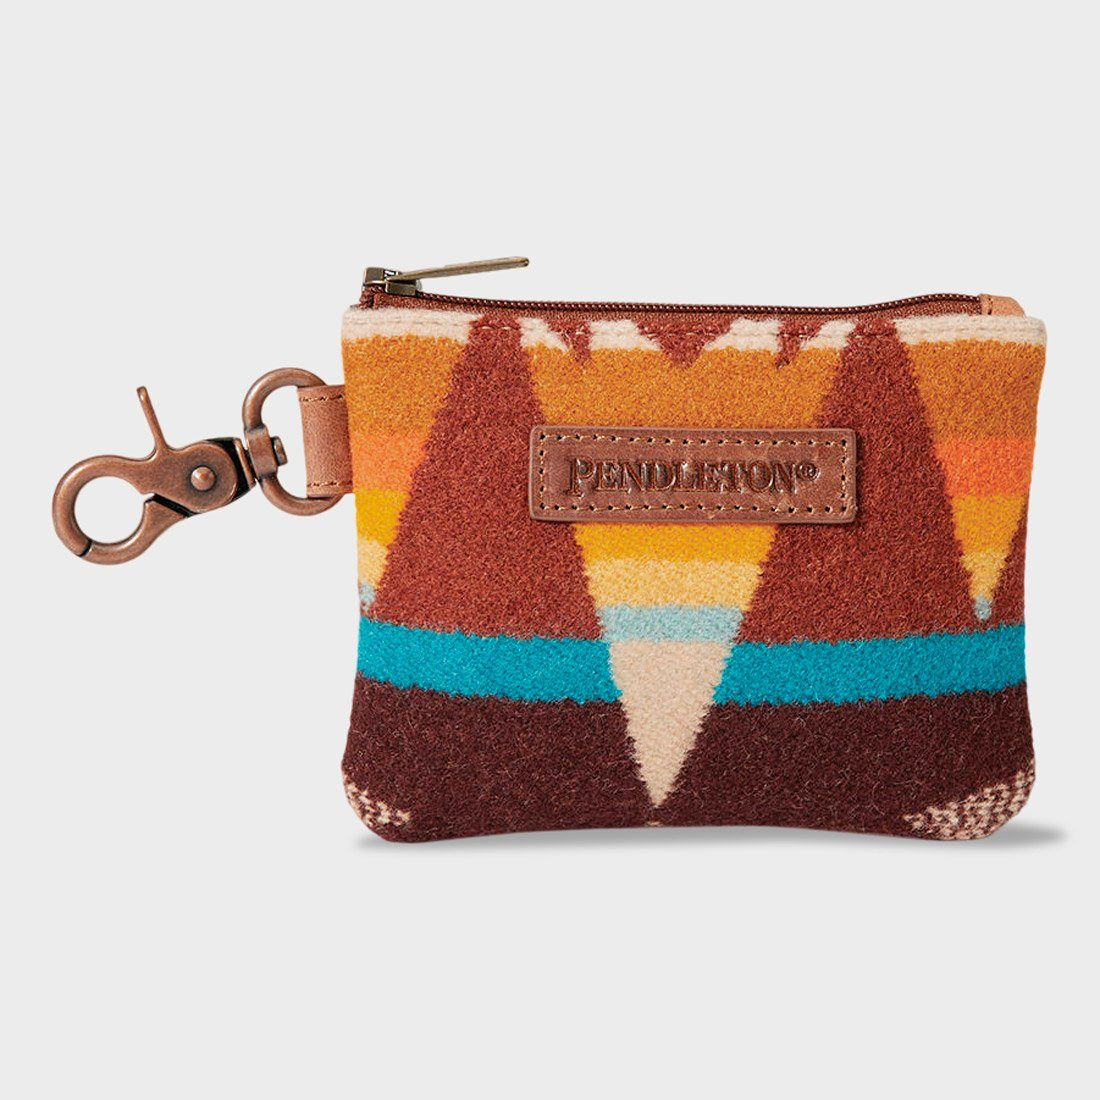 Pendleton ID Pouch with Key Ring Crescent Butte